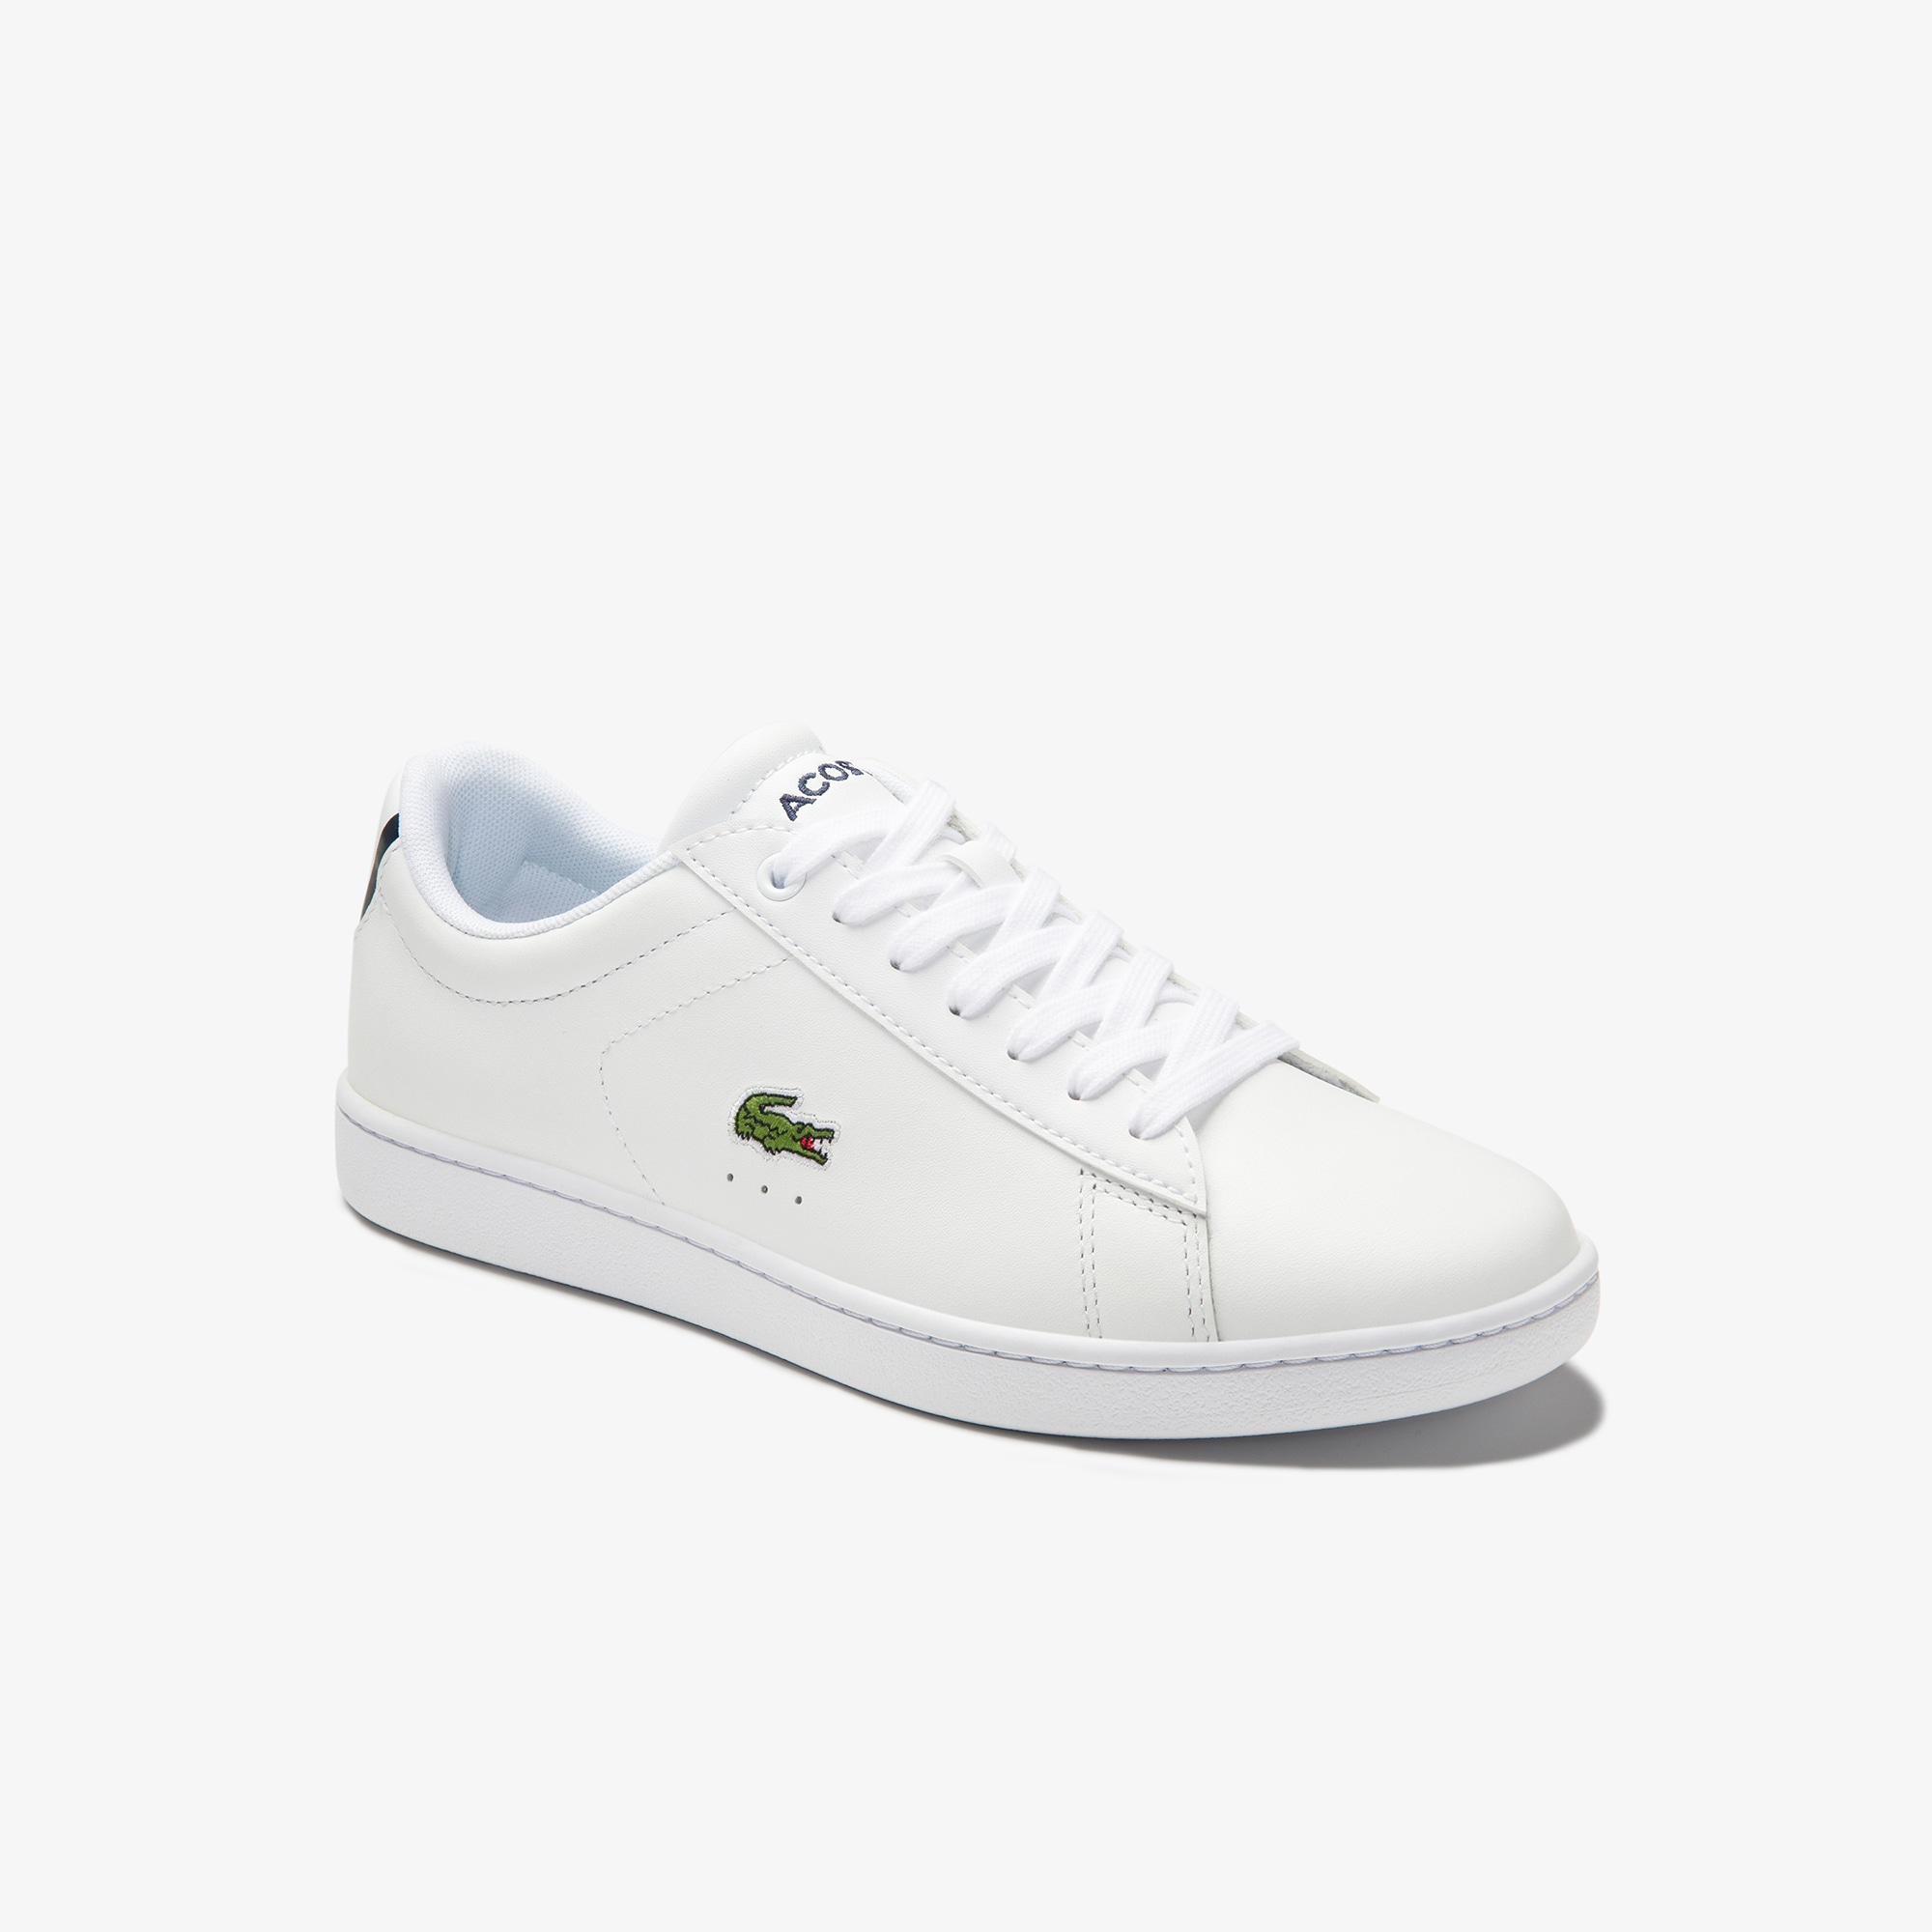 Women's Carnaby Evo Mesh-lined Leather